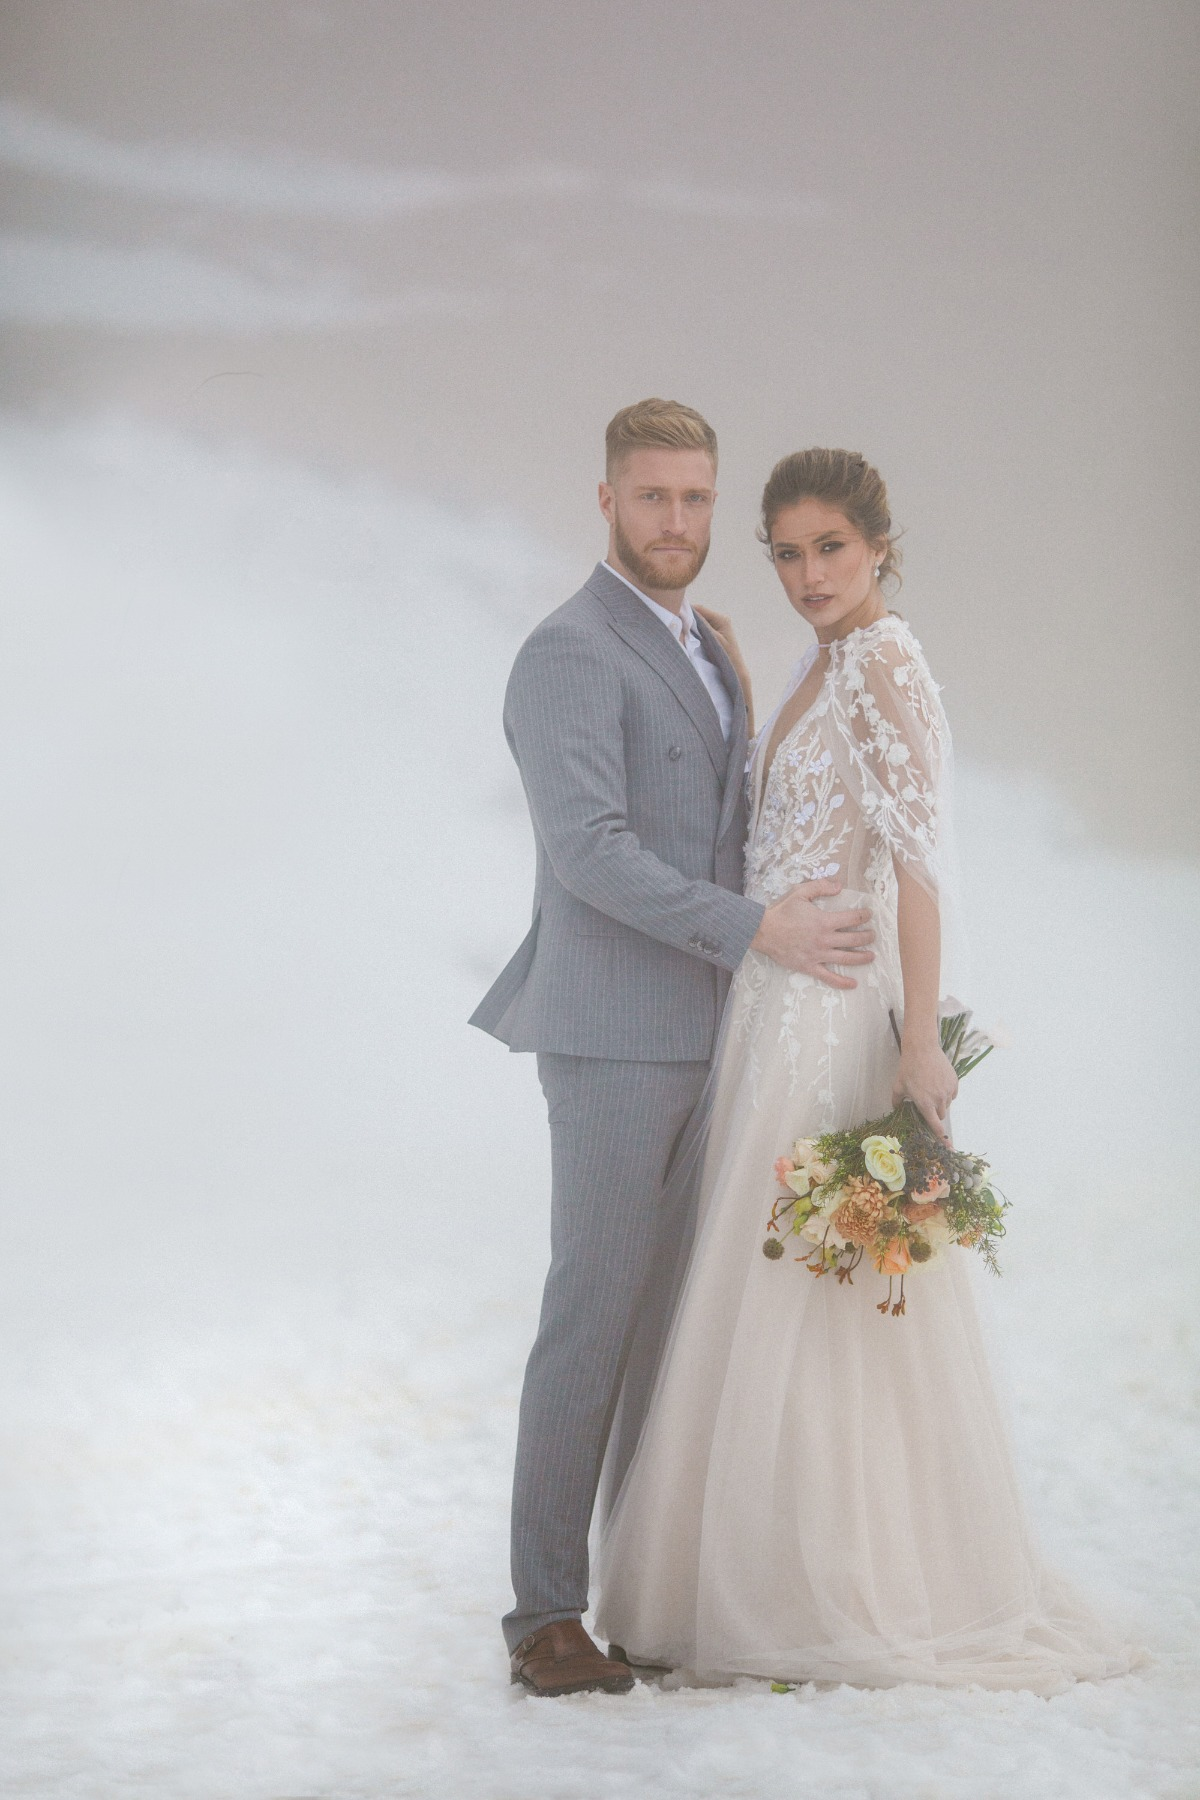 Snowy winter wedding pose ideas for bride and groom outside